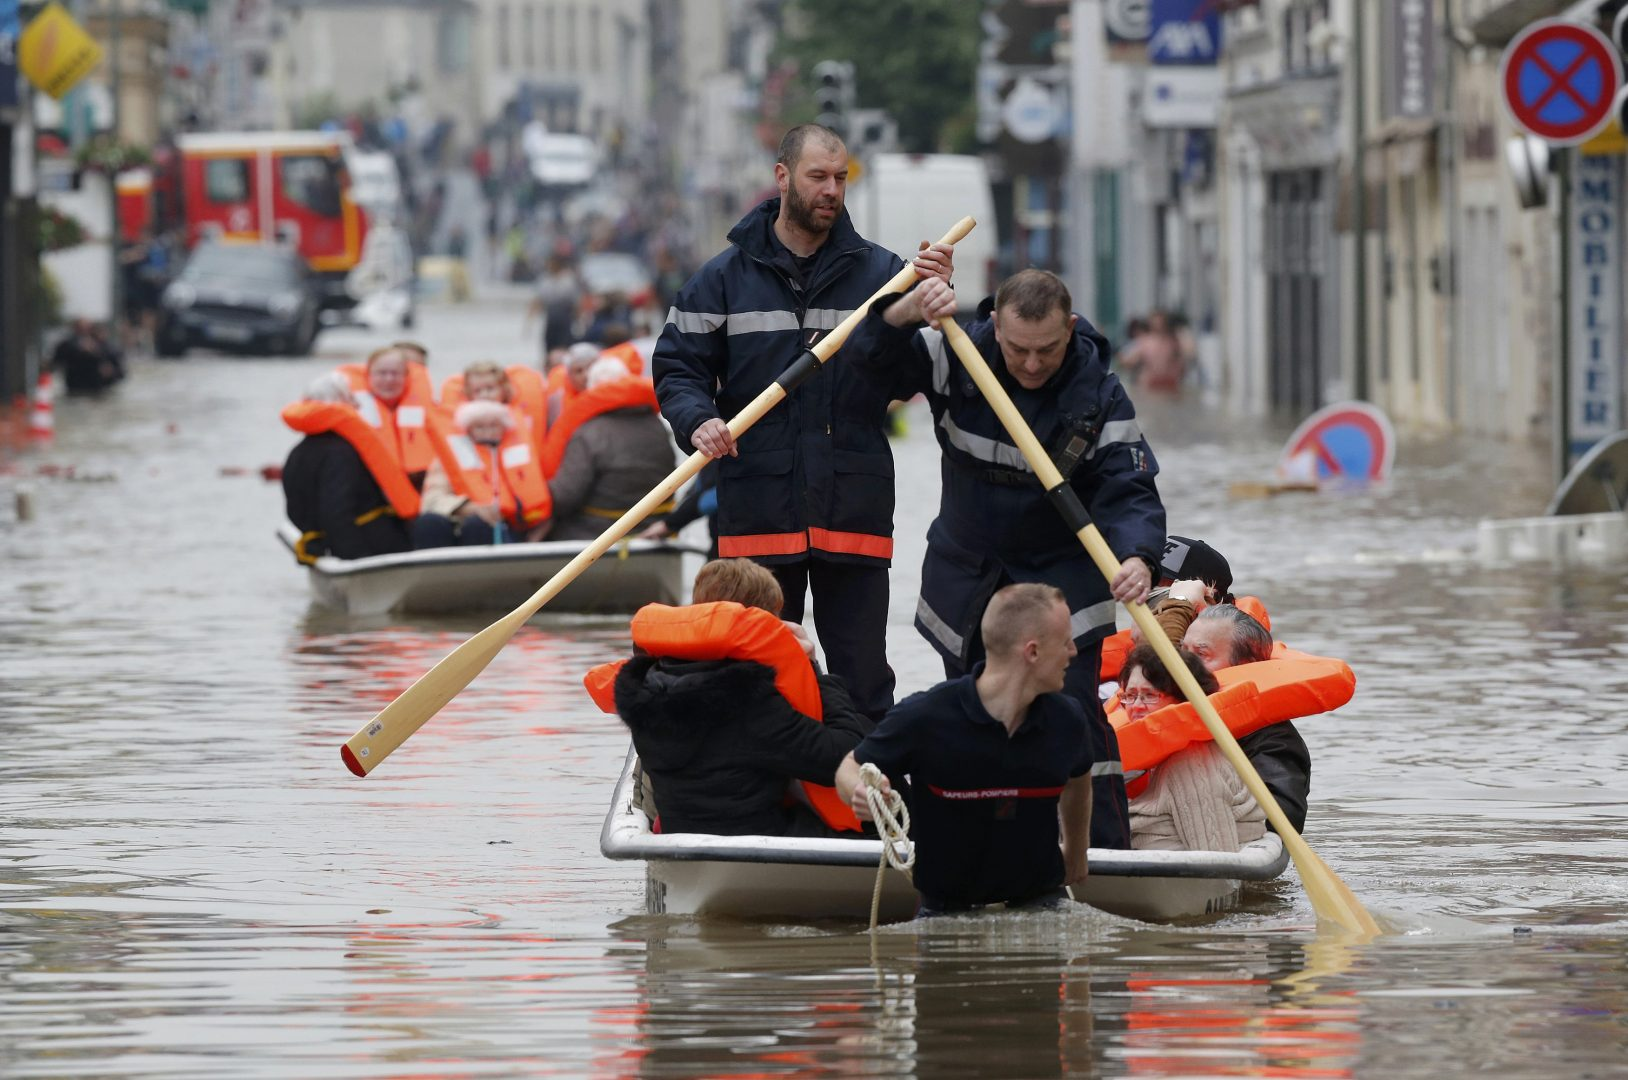 French firefighters on small boats evacuate residents from a flooded area after heavy rainfall in Nemours, southern Paris, June 1, 2016. REUTERS/Christian Hartmann